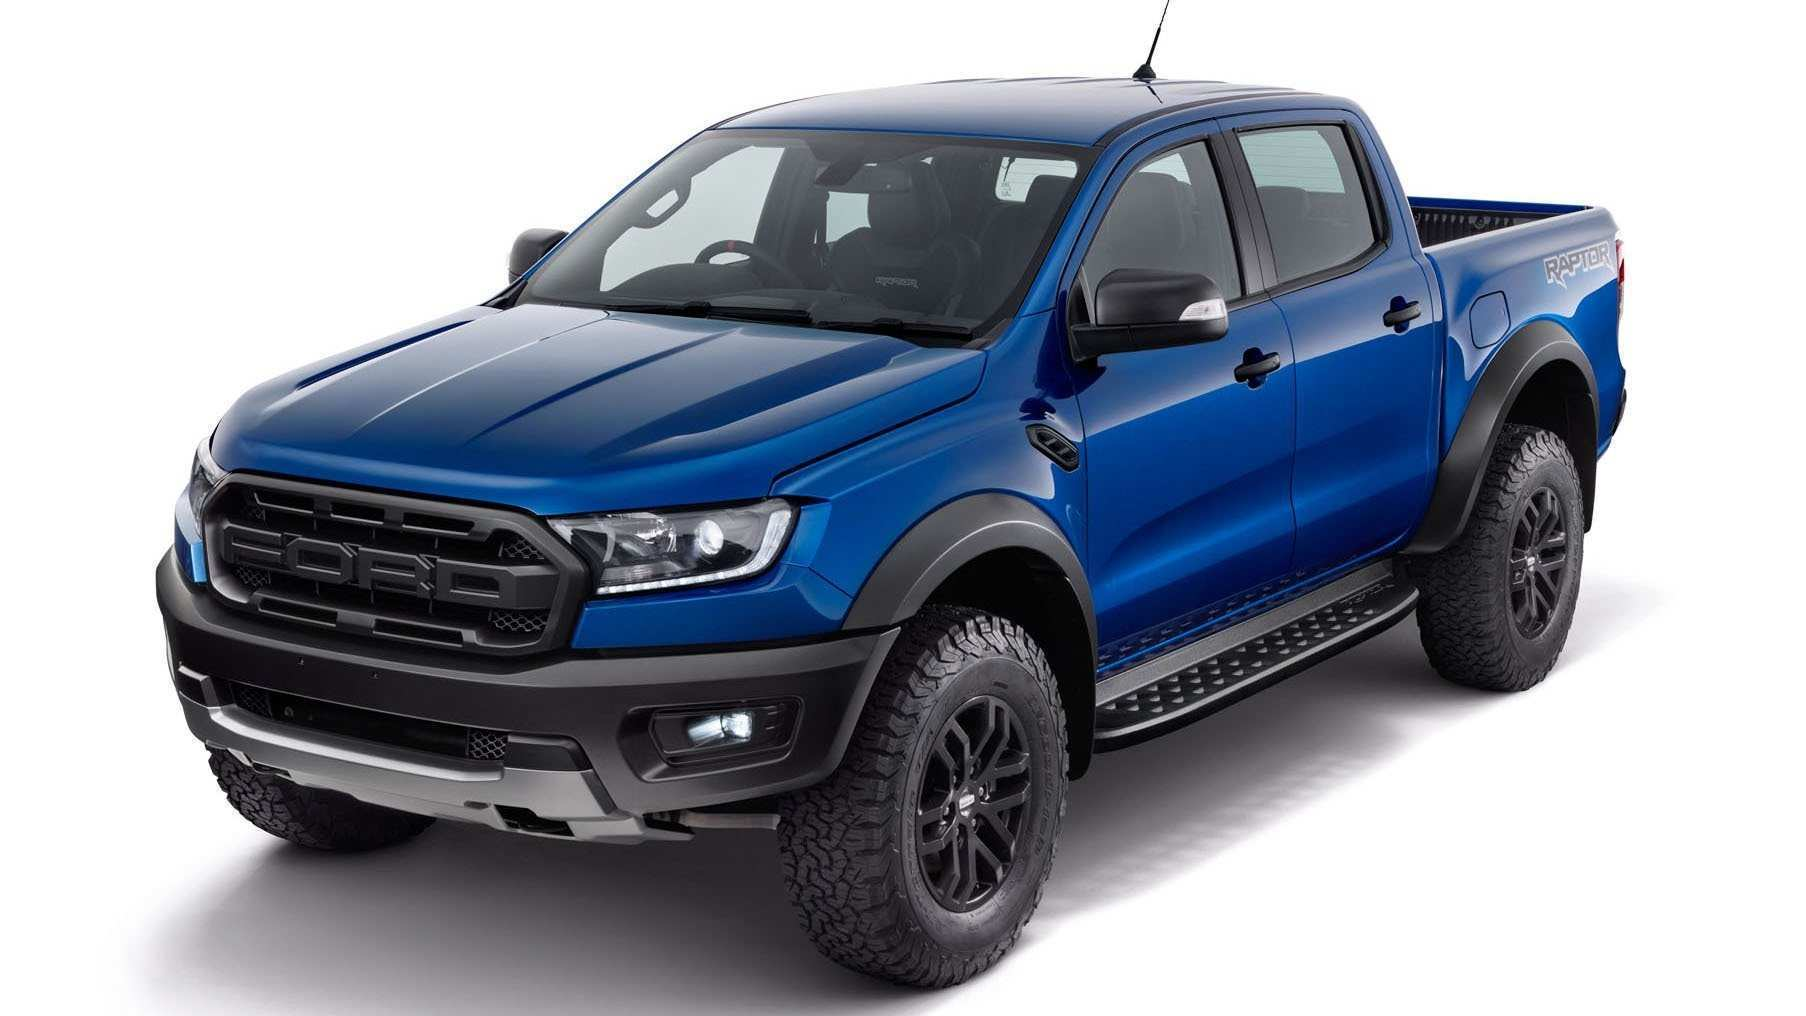 35 Concept of The Ford Ranger 2019 Release Date Review Review for The Ford Ranger 2019 Release Date Review